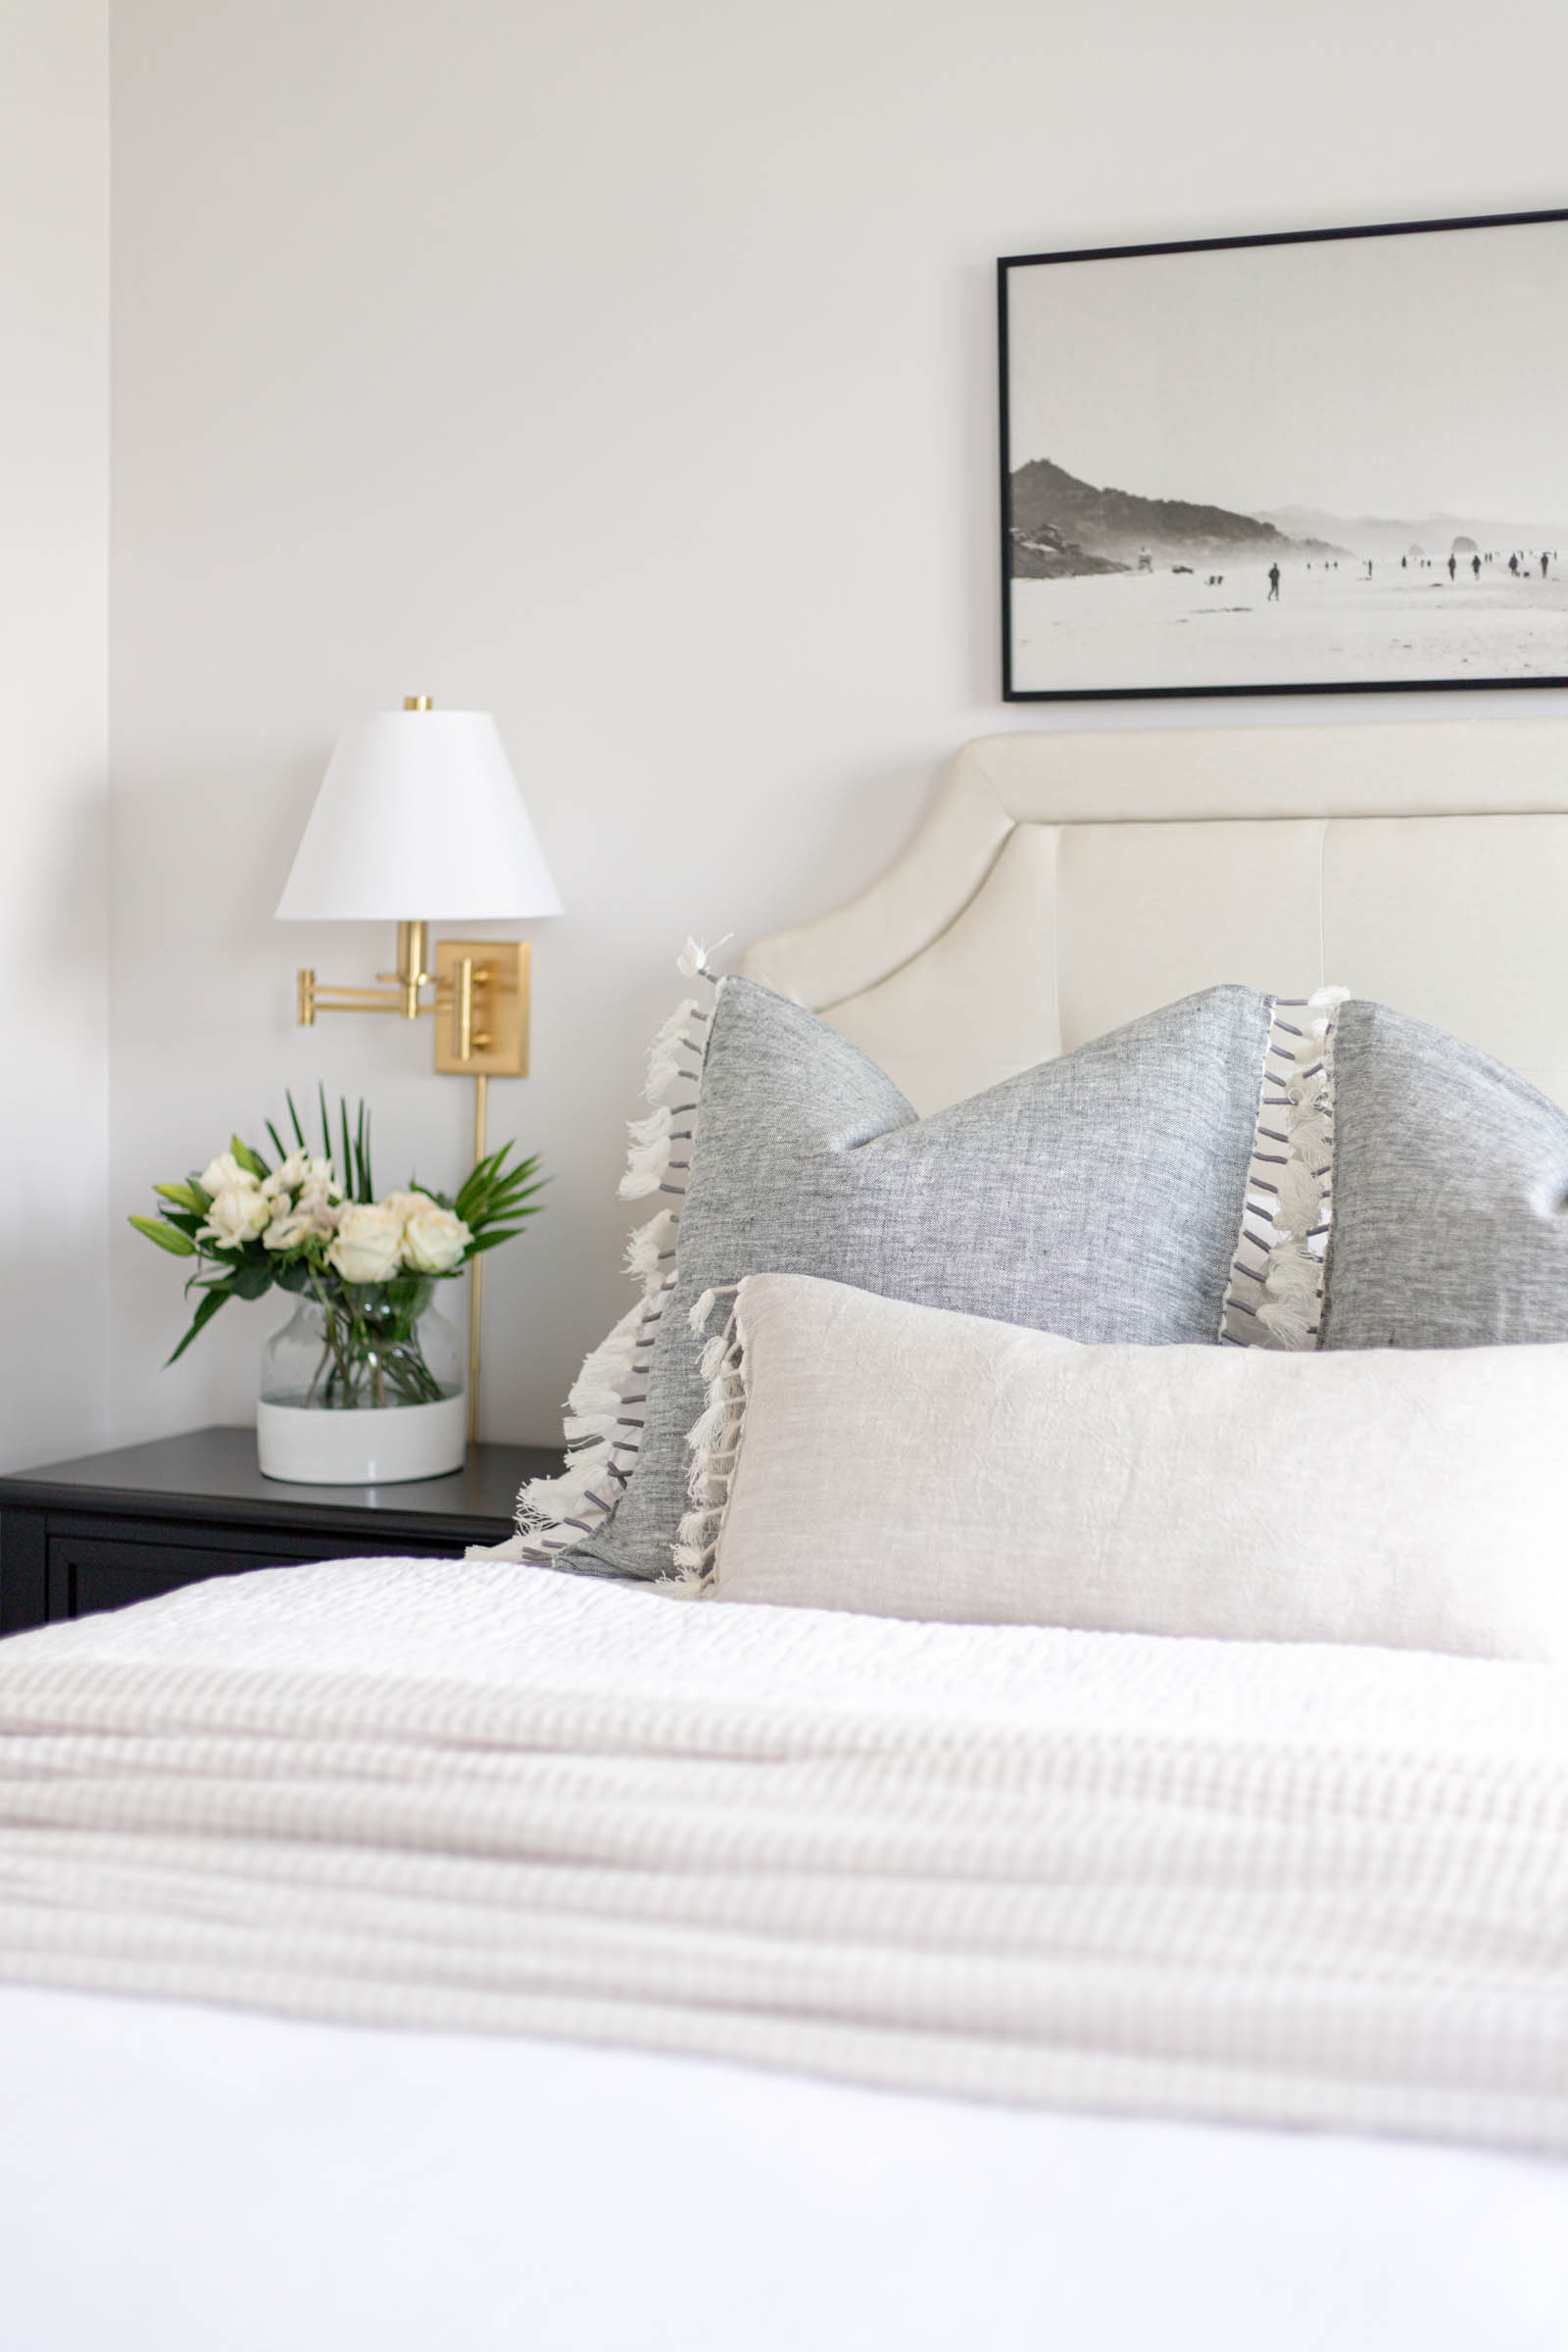 casual bedroom styling with white linen duvet and linen pillow covers, brass wall sconces